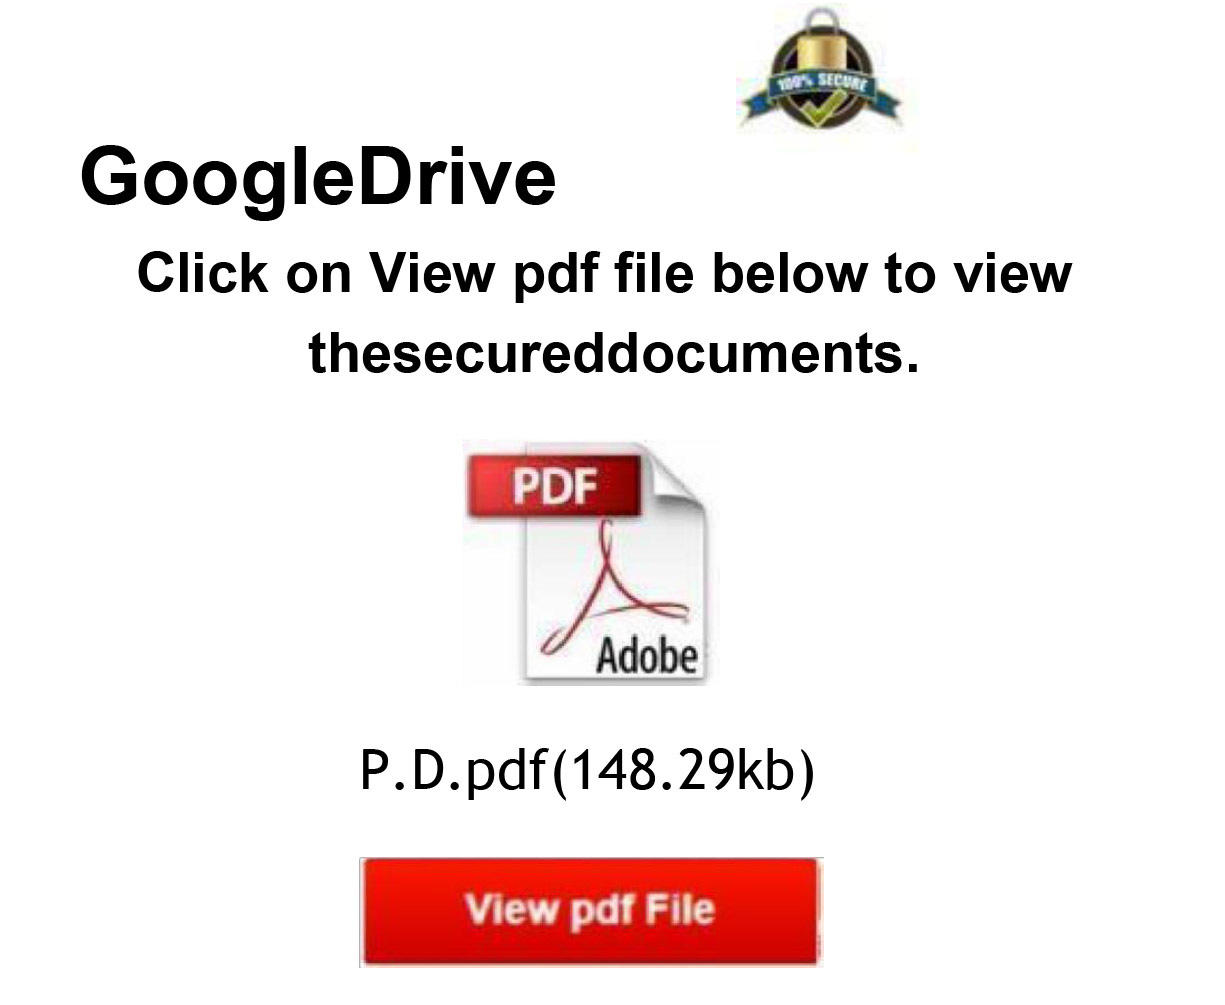 google drive fake message